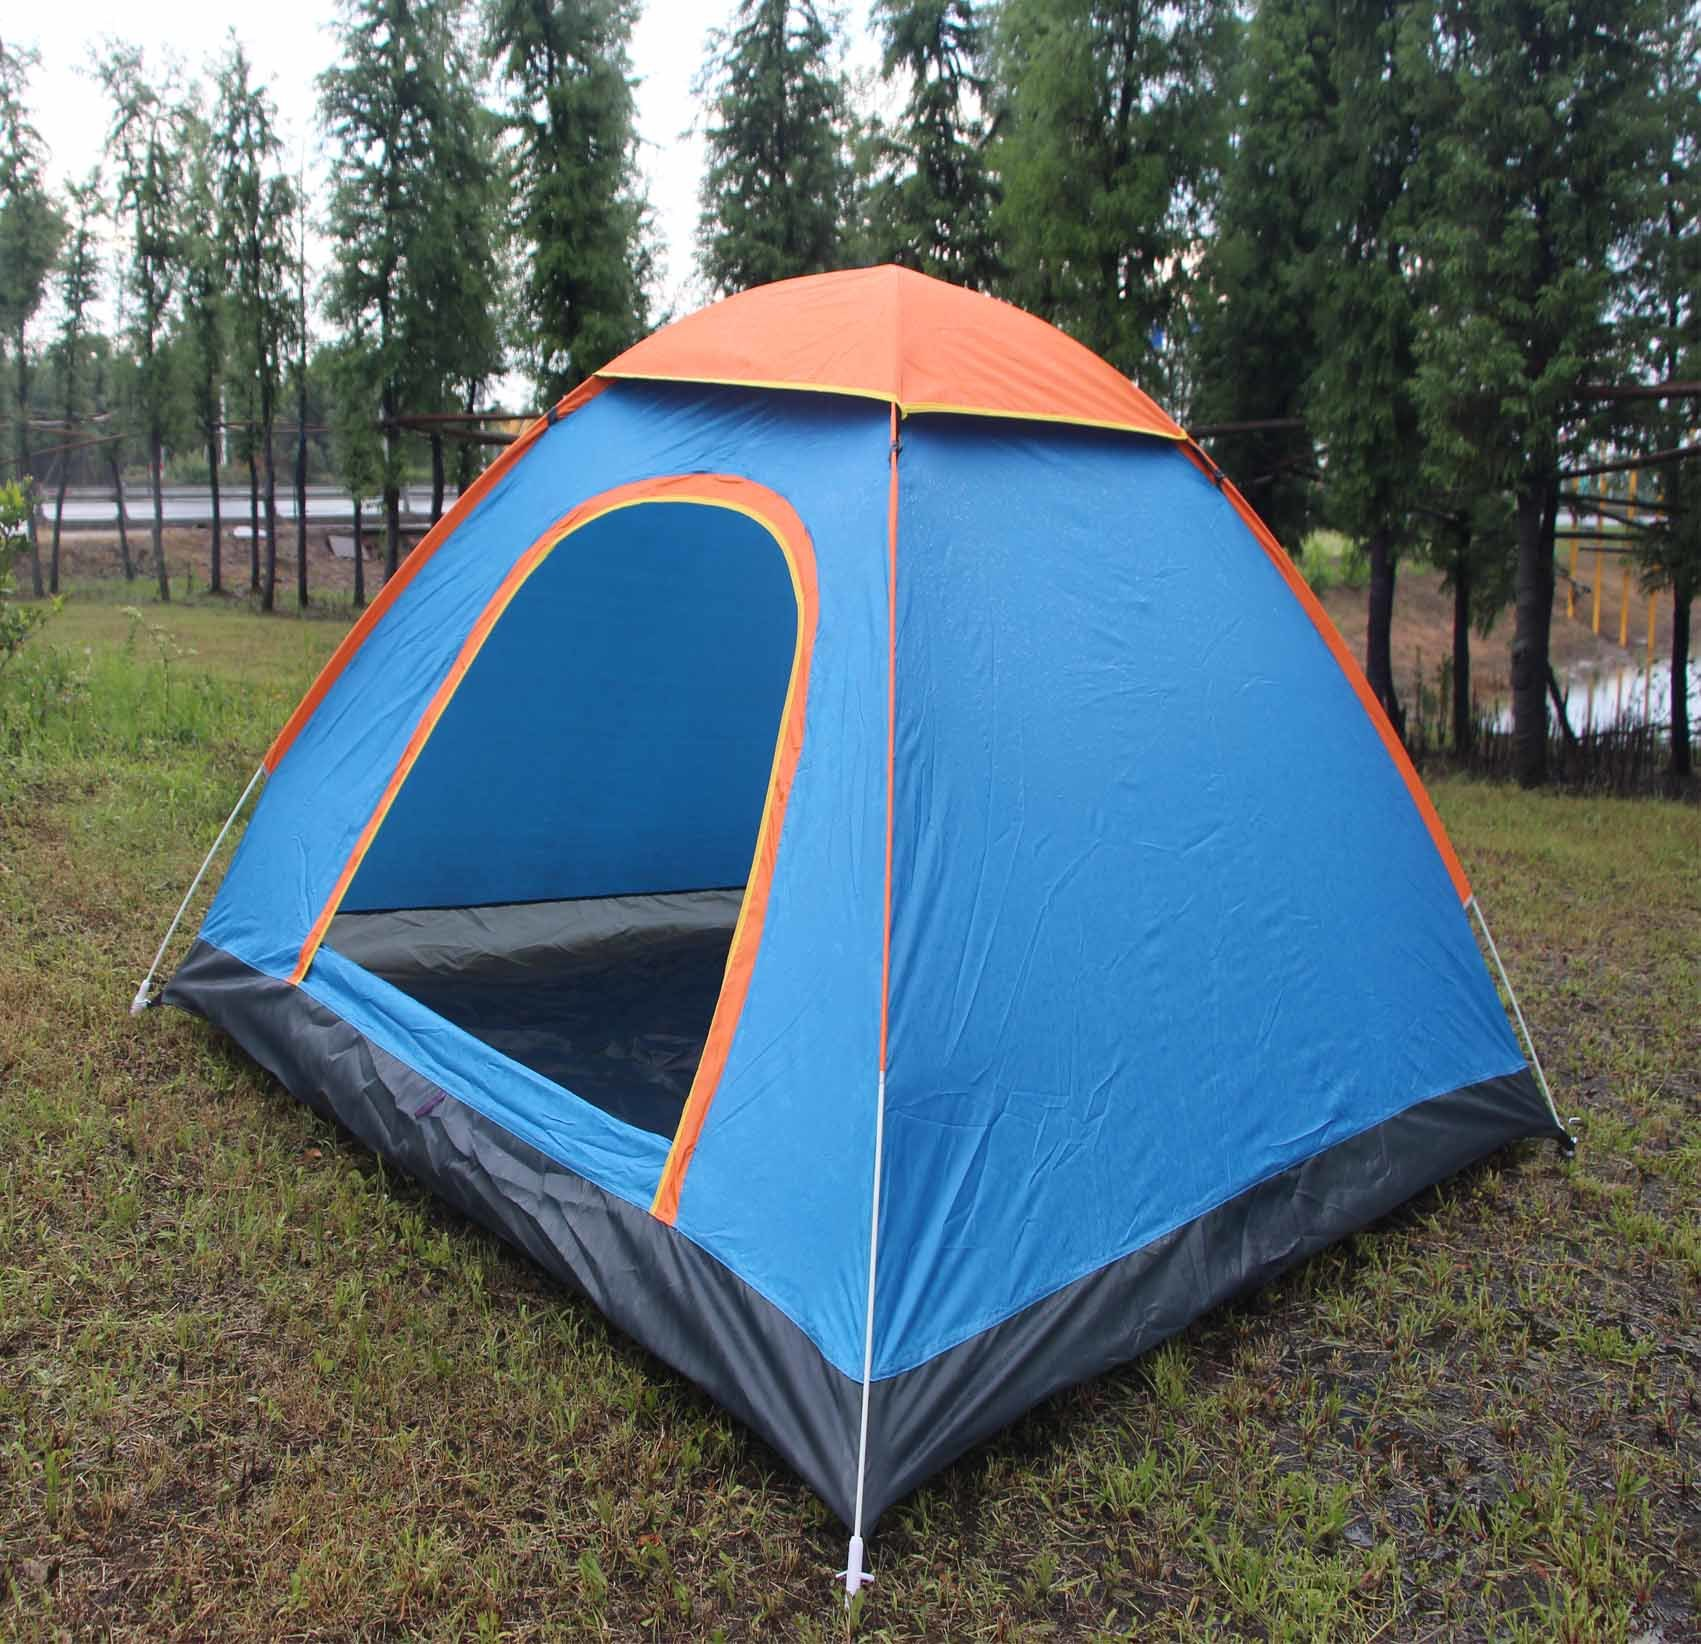 Factory Sale Cheaper Camping Tent, Cheap Outdoor Tent, Umbrella Camping Tent